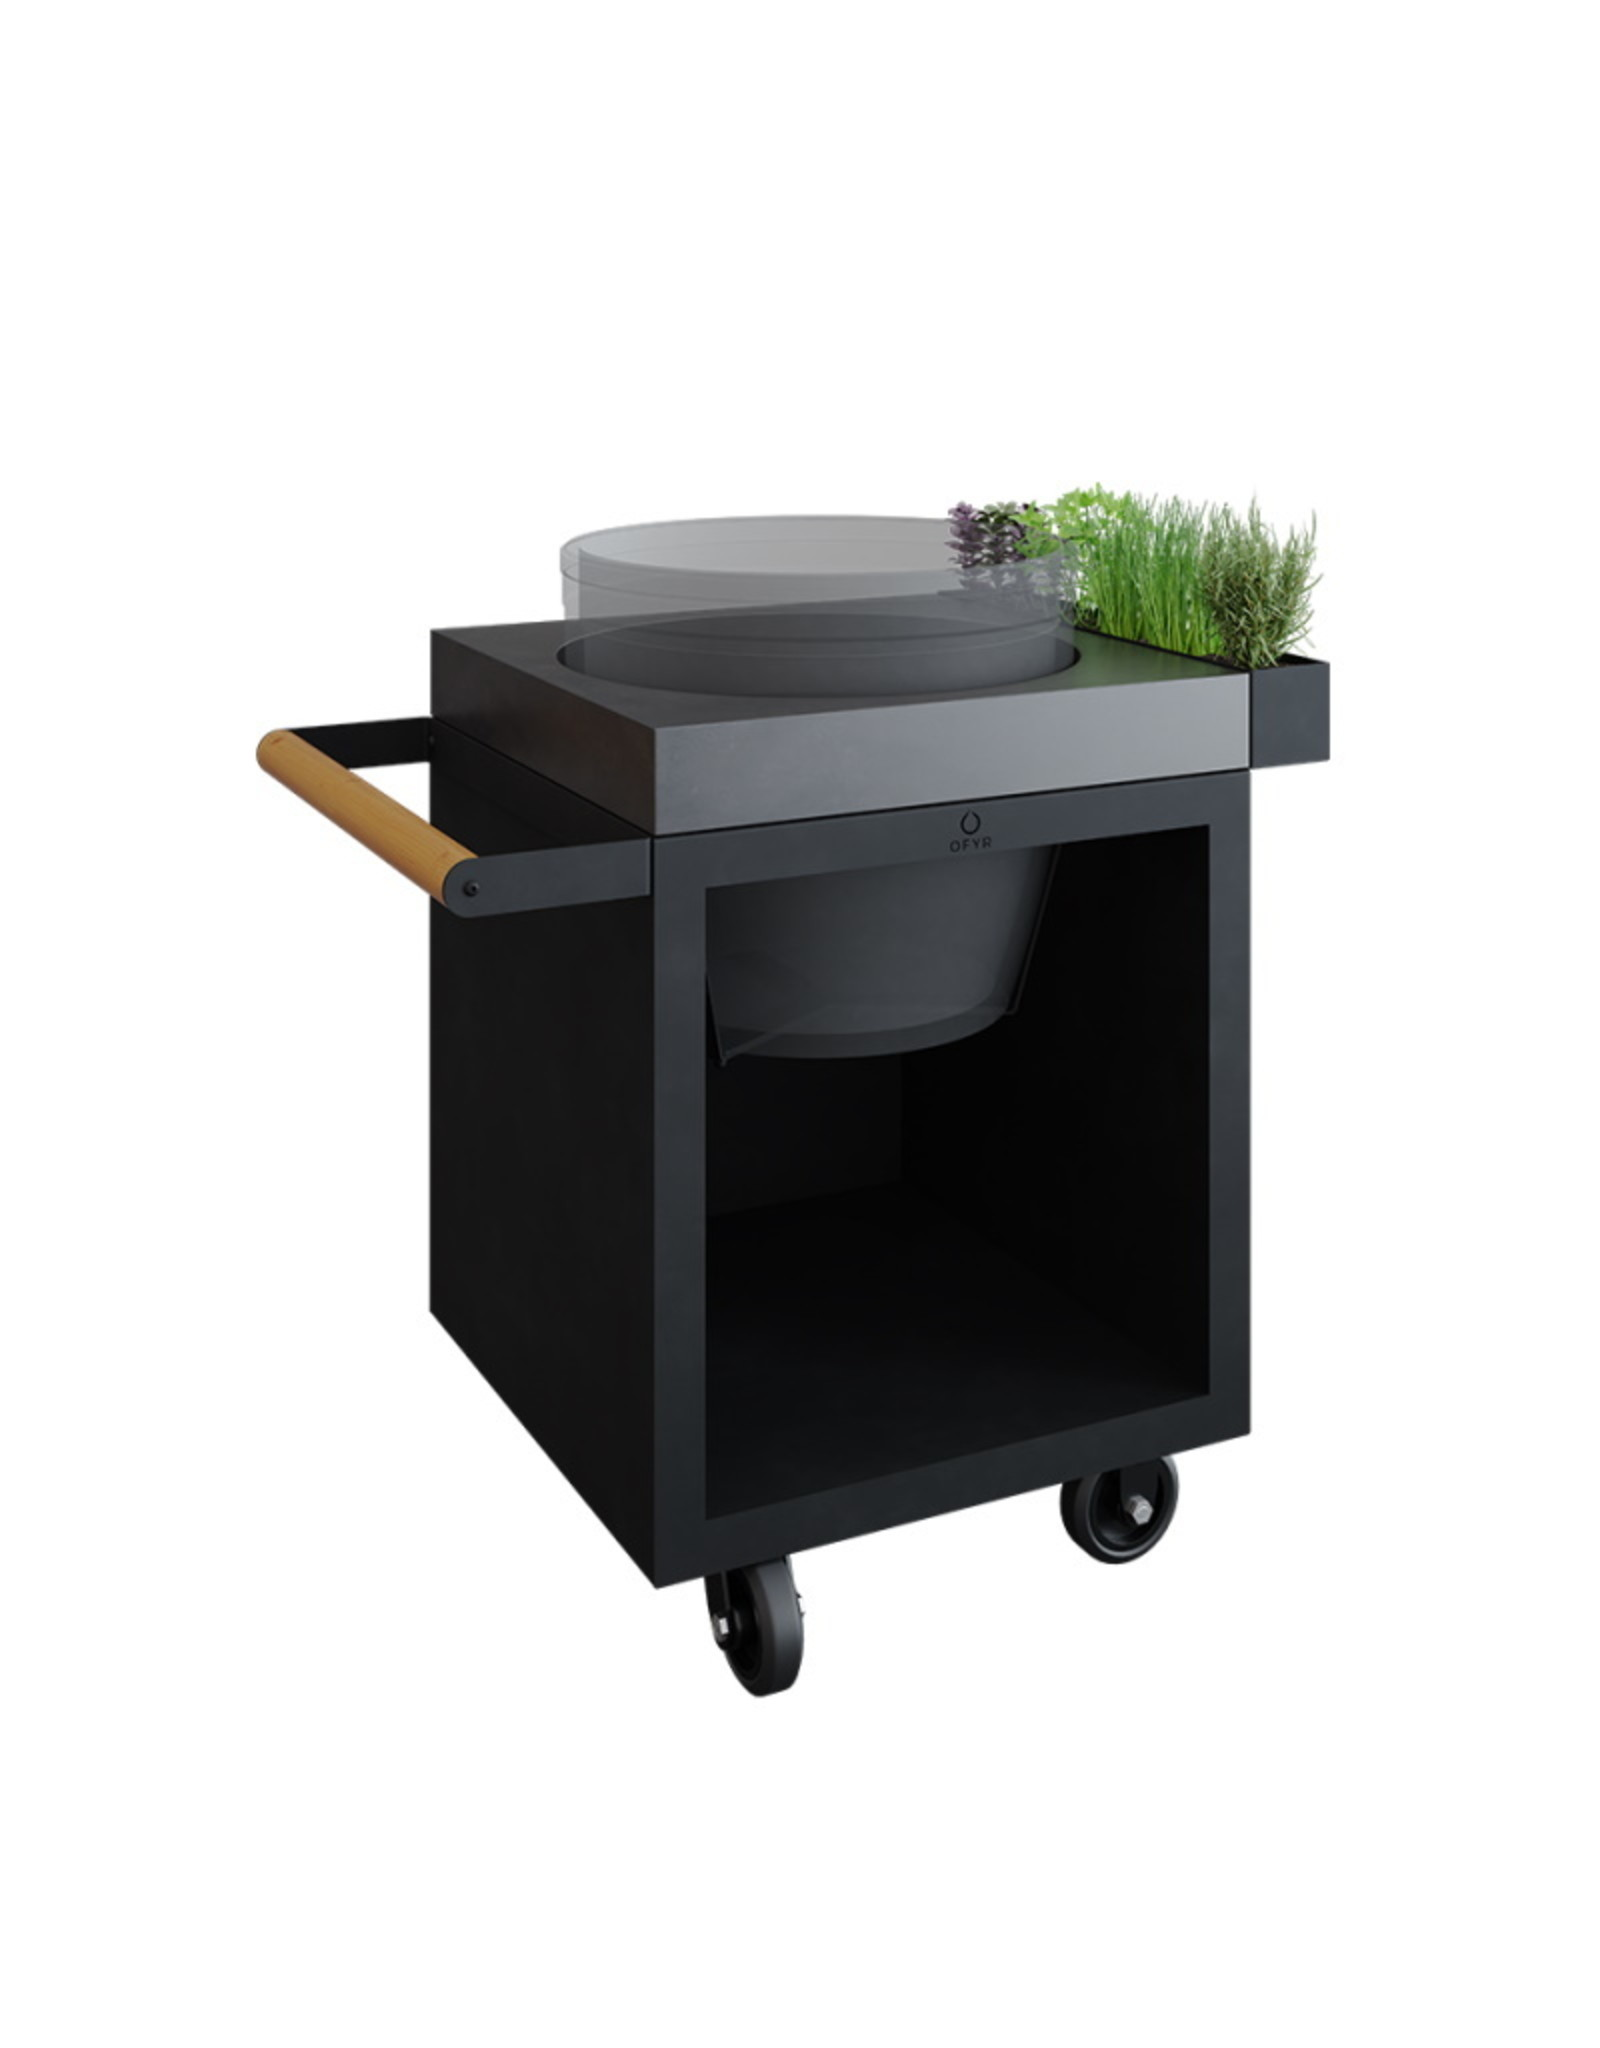 OFYR Kamado Table Black 65 PRO Beton BGE